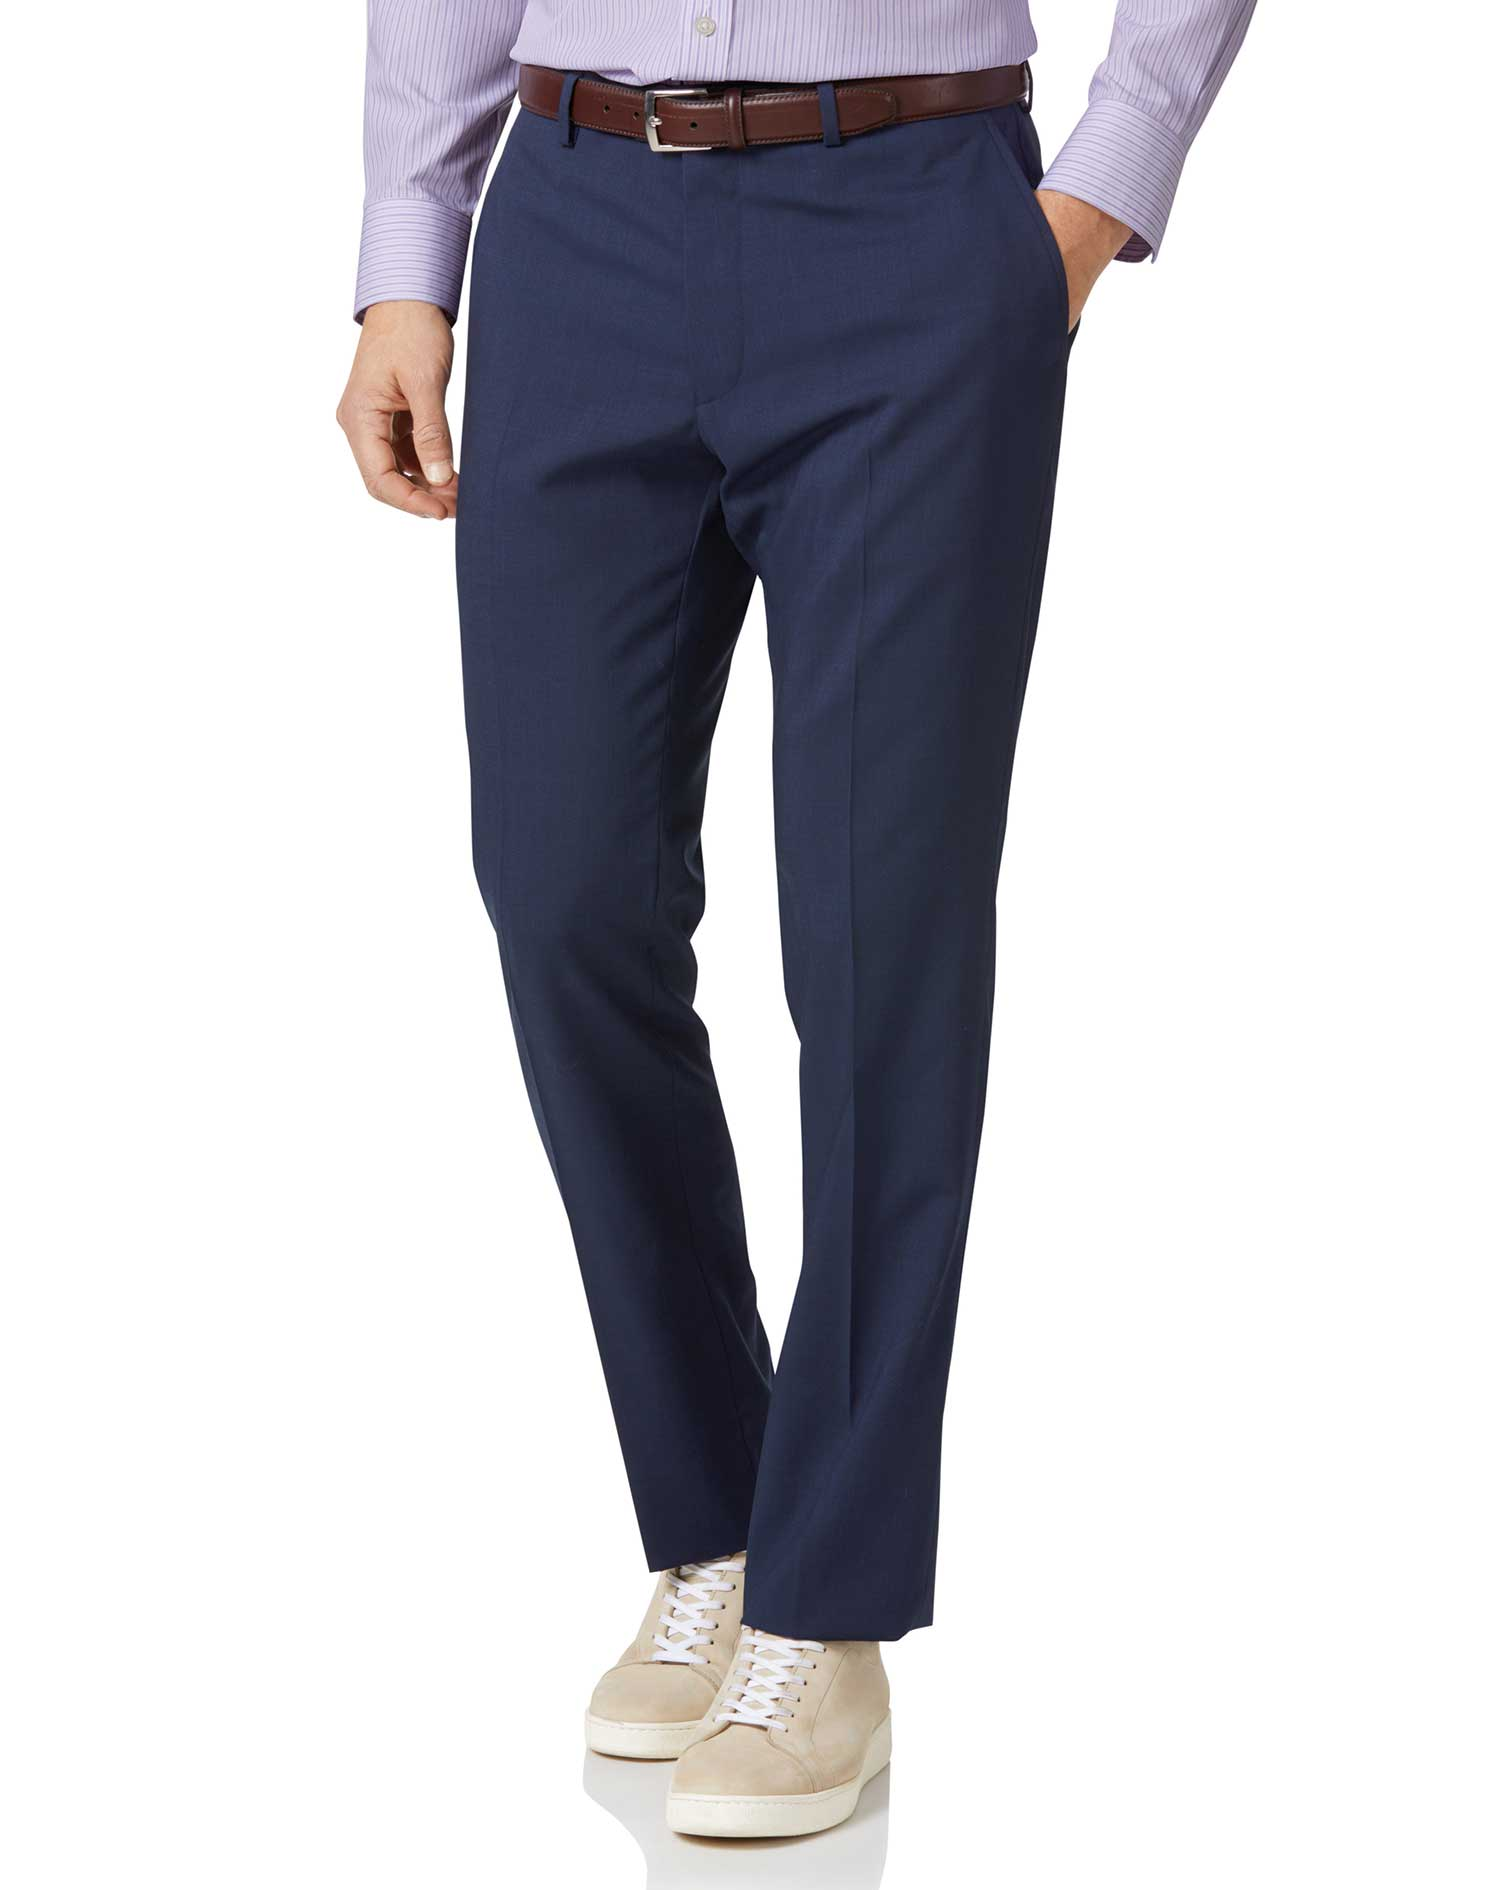 Navy Slim Fit Step Weave Suit Trousers Size W36 L34 by Charles Tyrwhitt